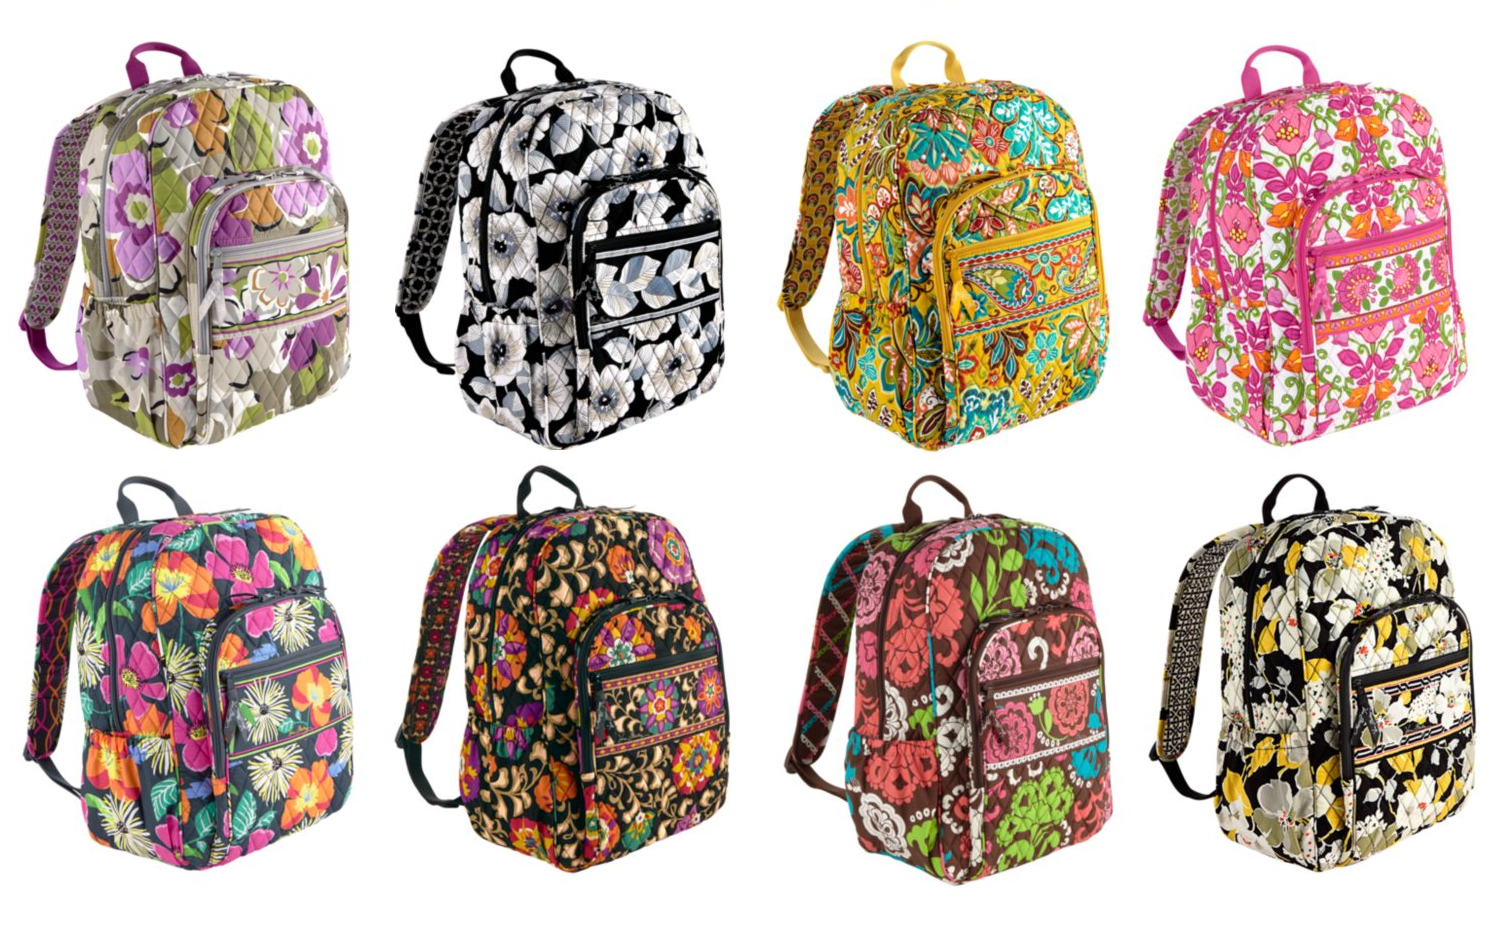 Cute Girly Backpacks Eb7CllxZ